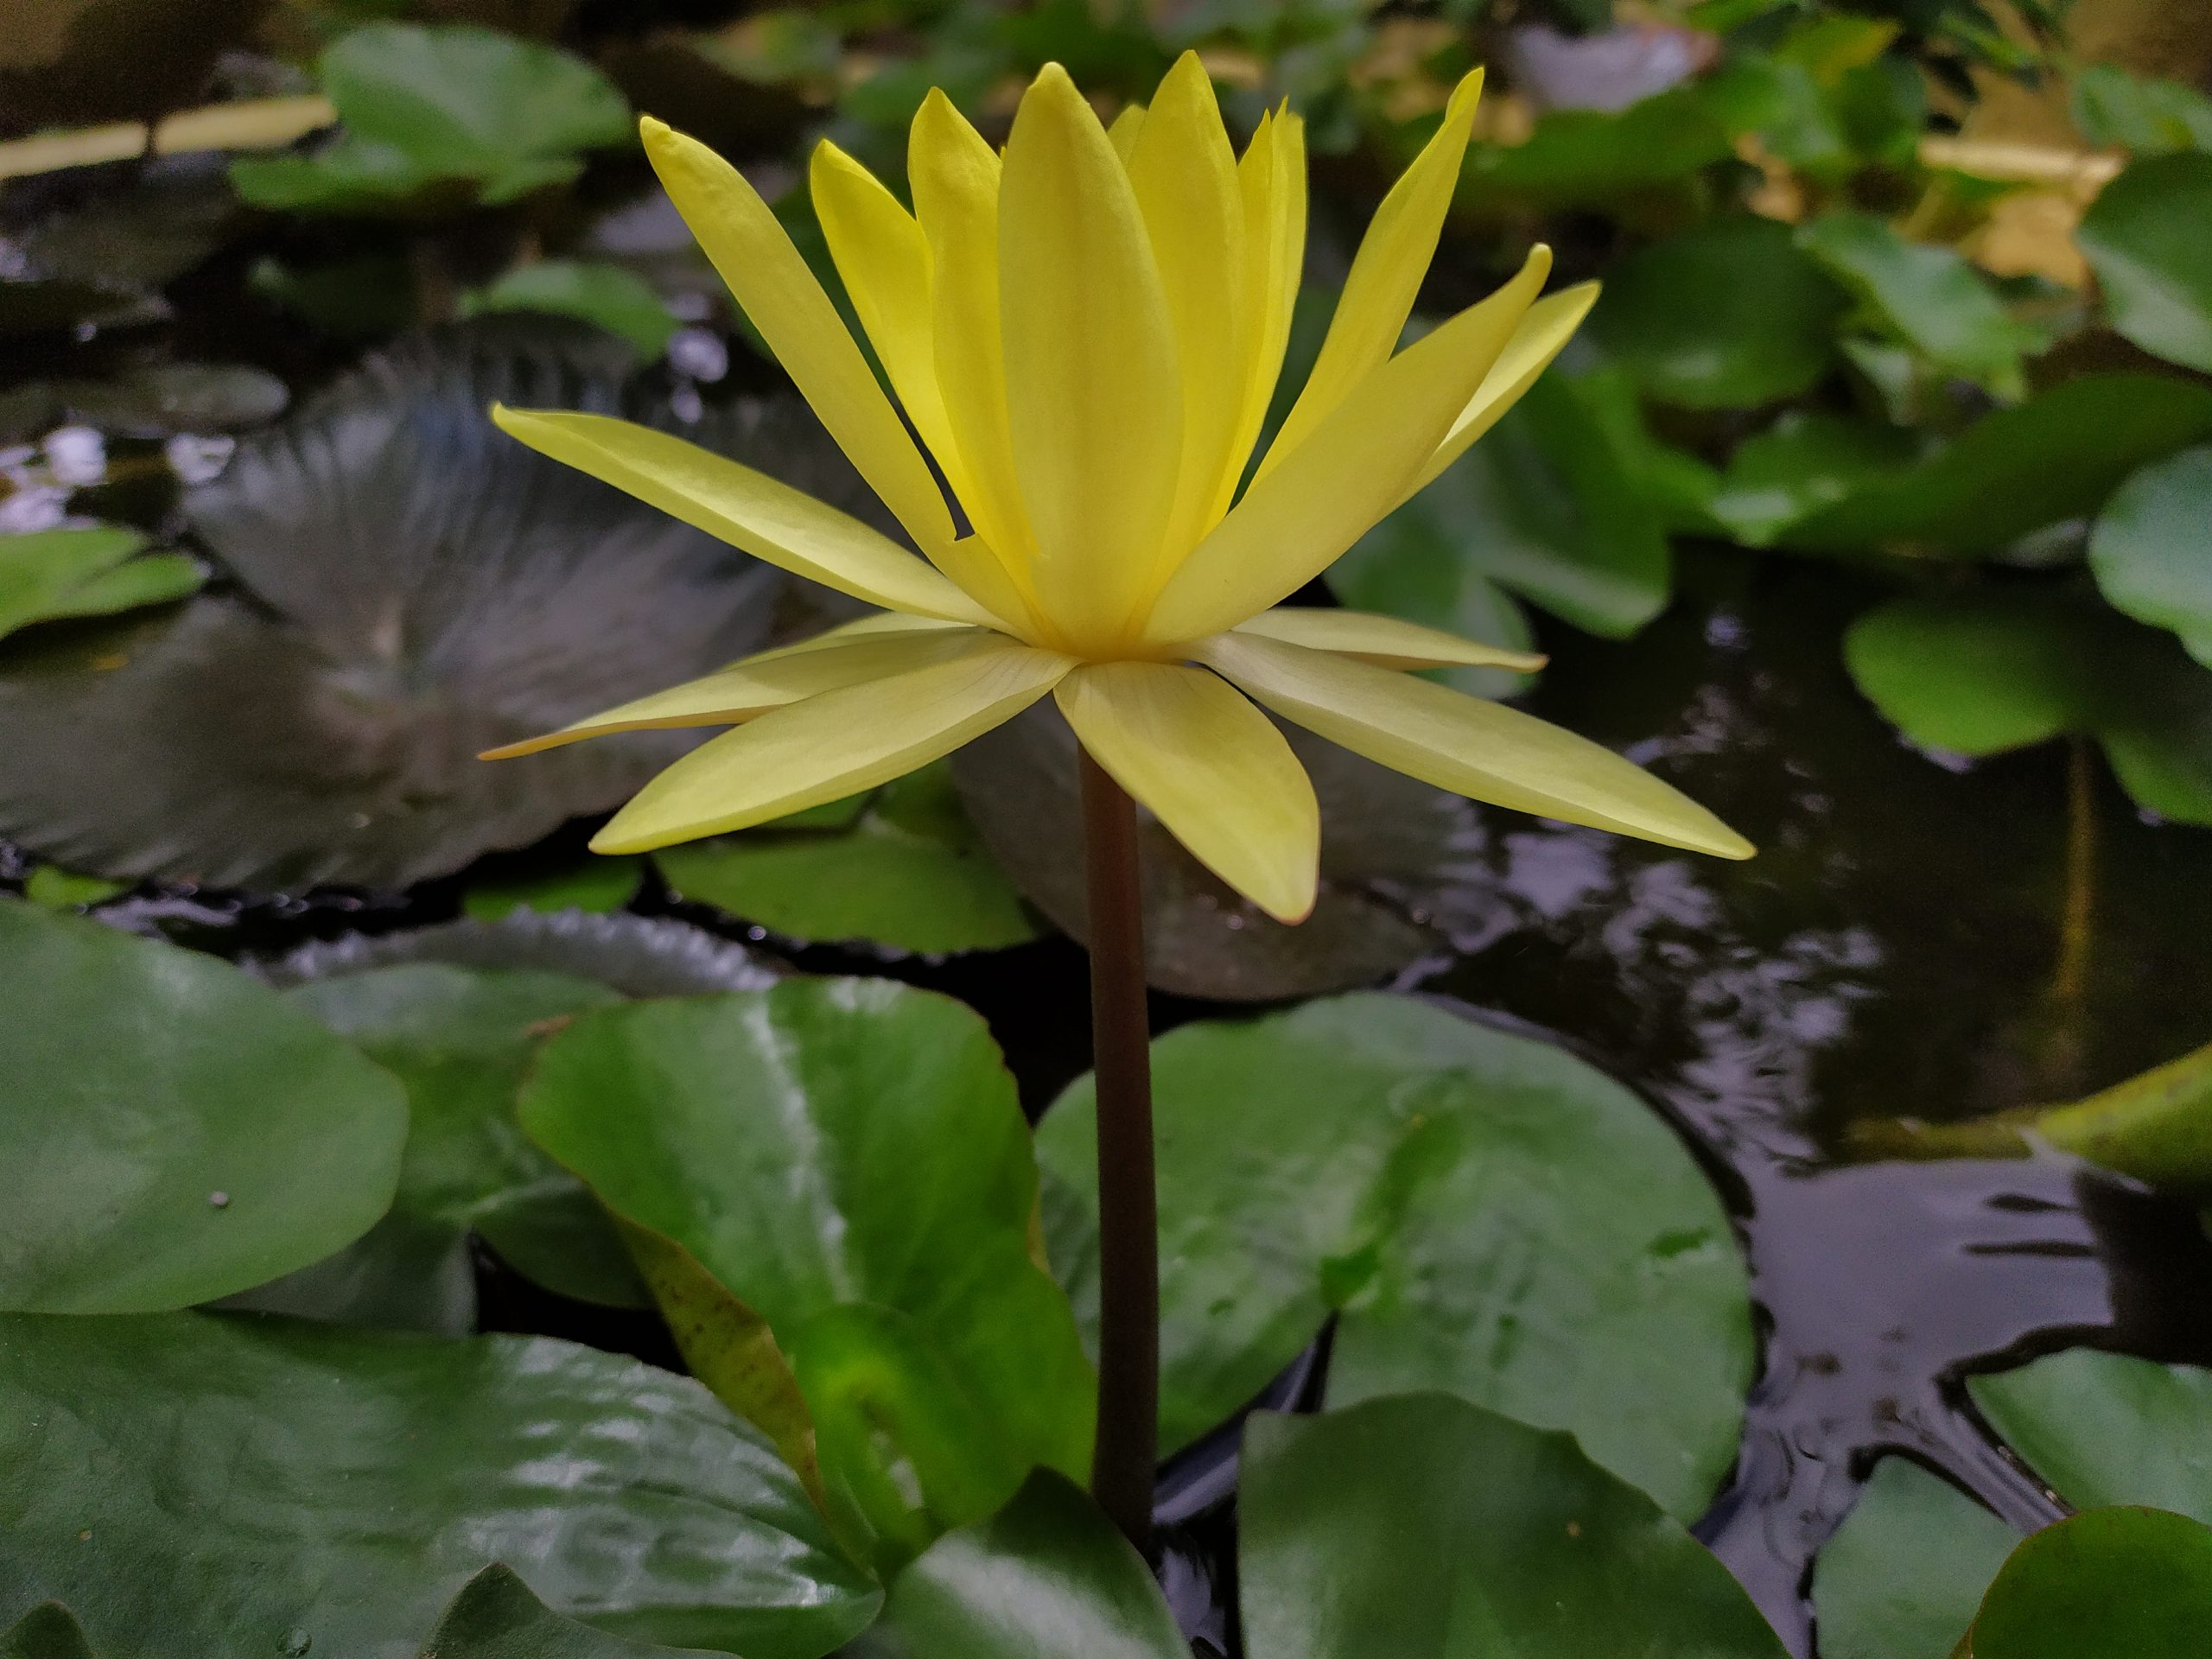 Yellow Lotus Flower in the Pond